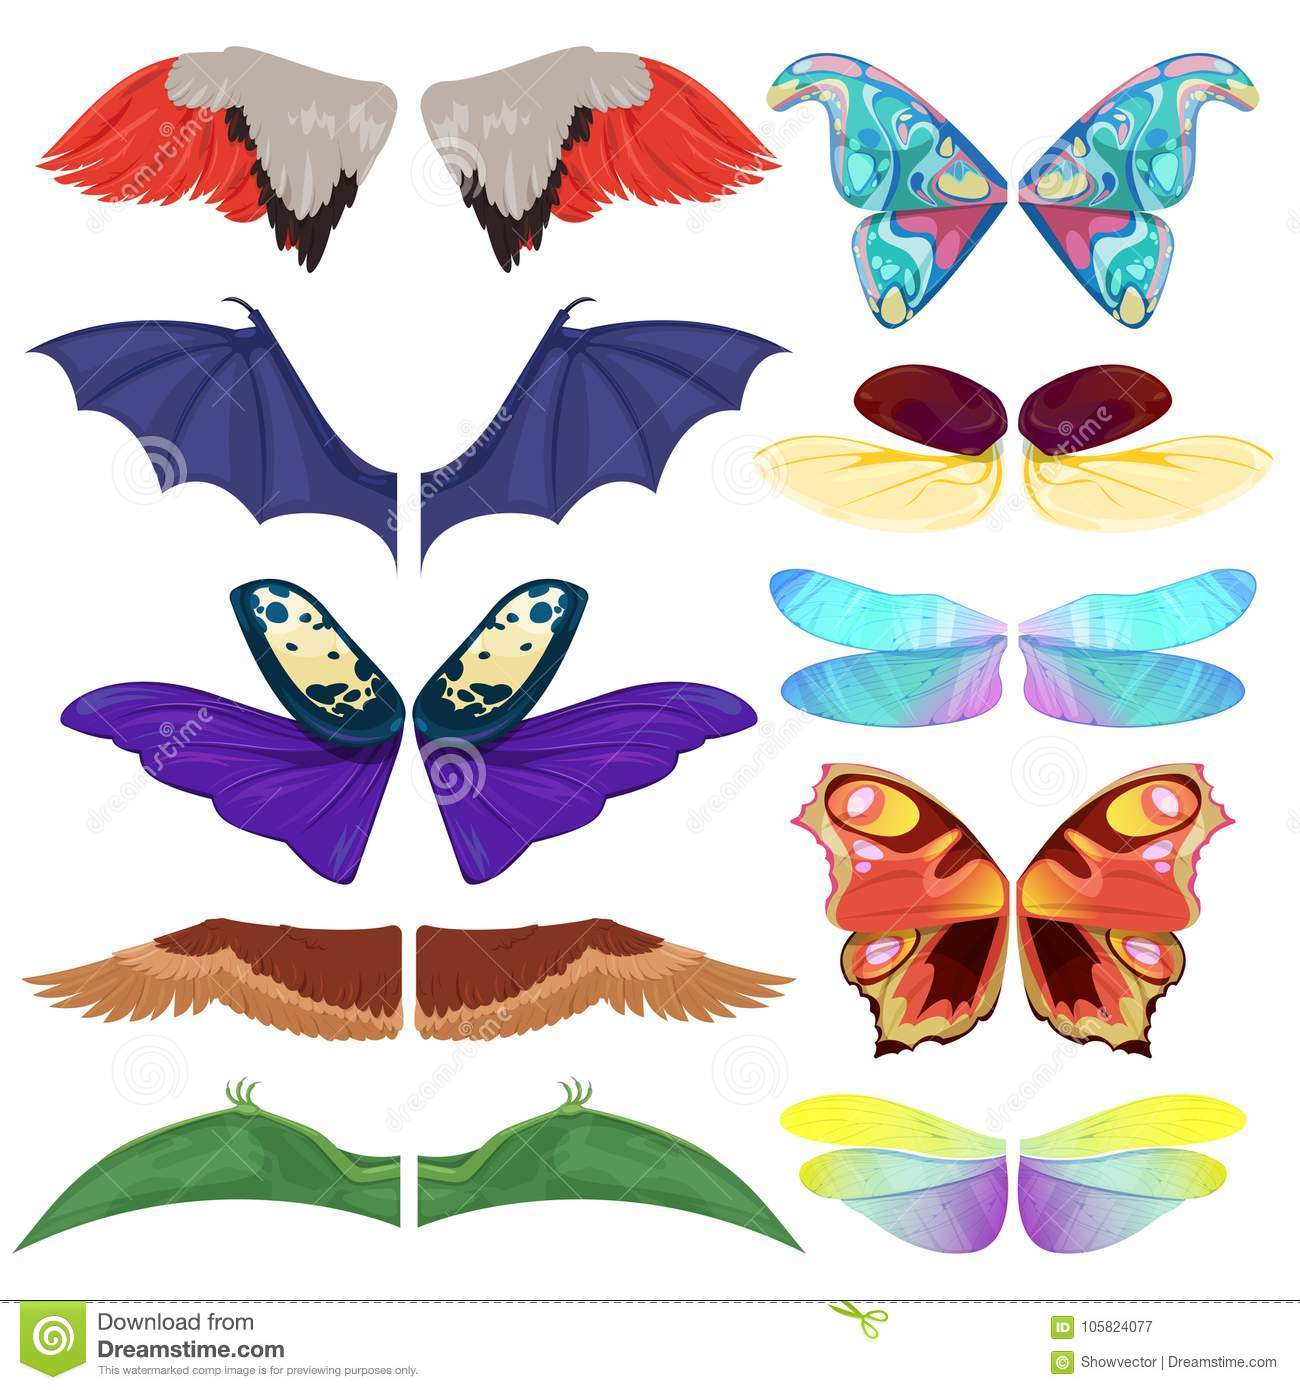 Fairy insect wings vector flying kids carnival costume winged bird bat and butterfly insects with wingspan for halloween